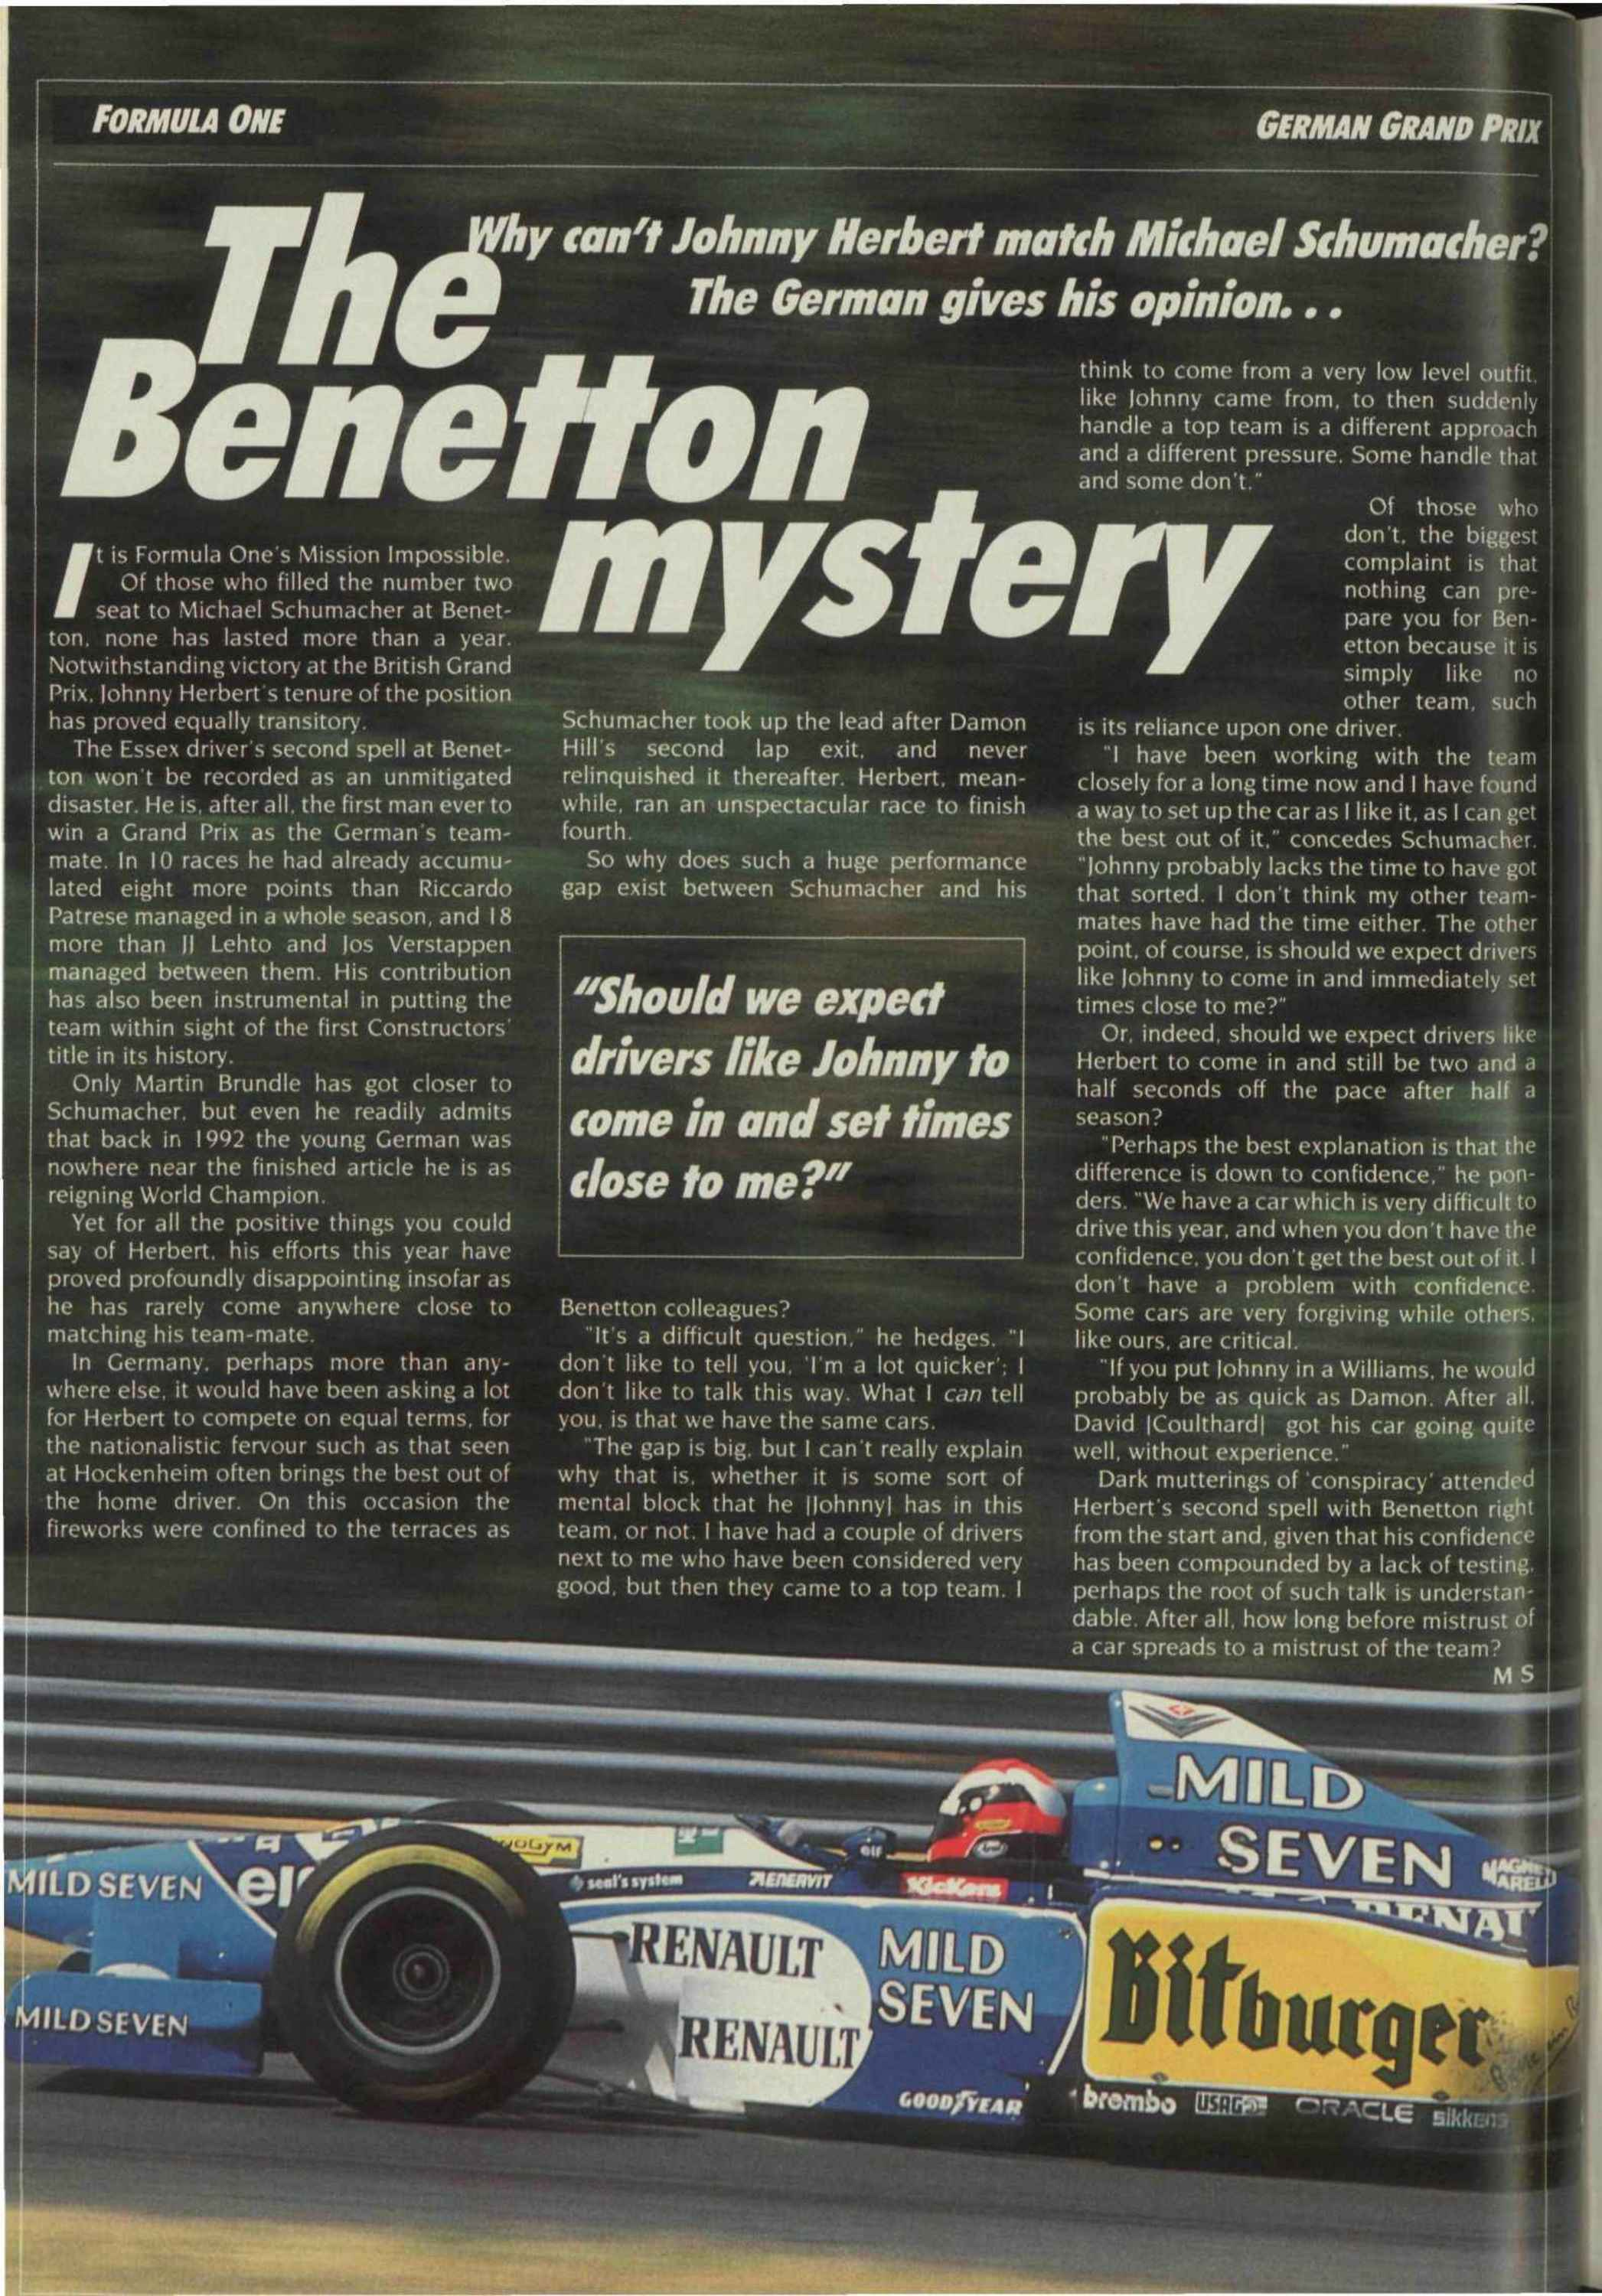 the benetton mystery image